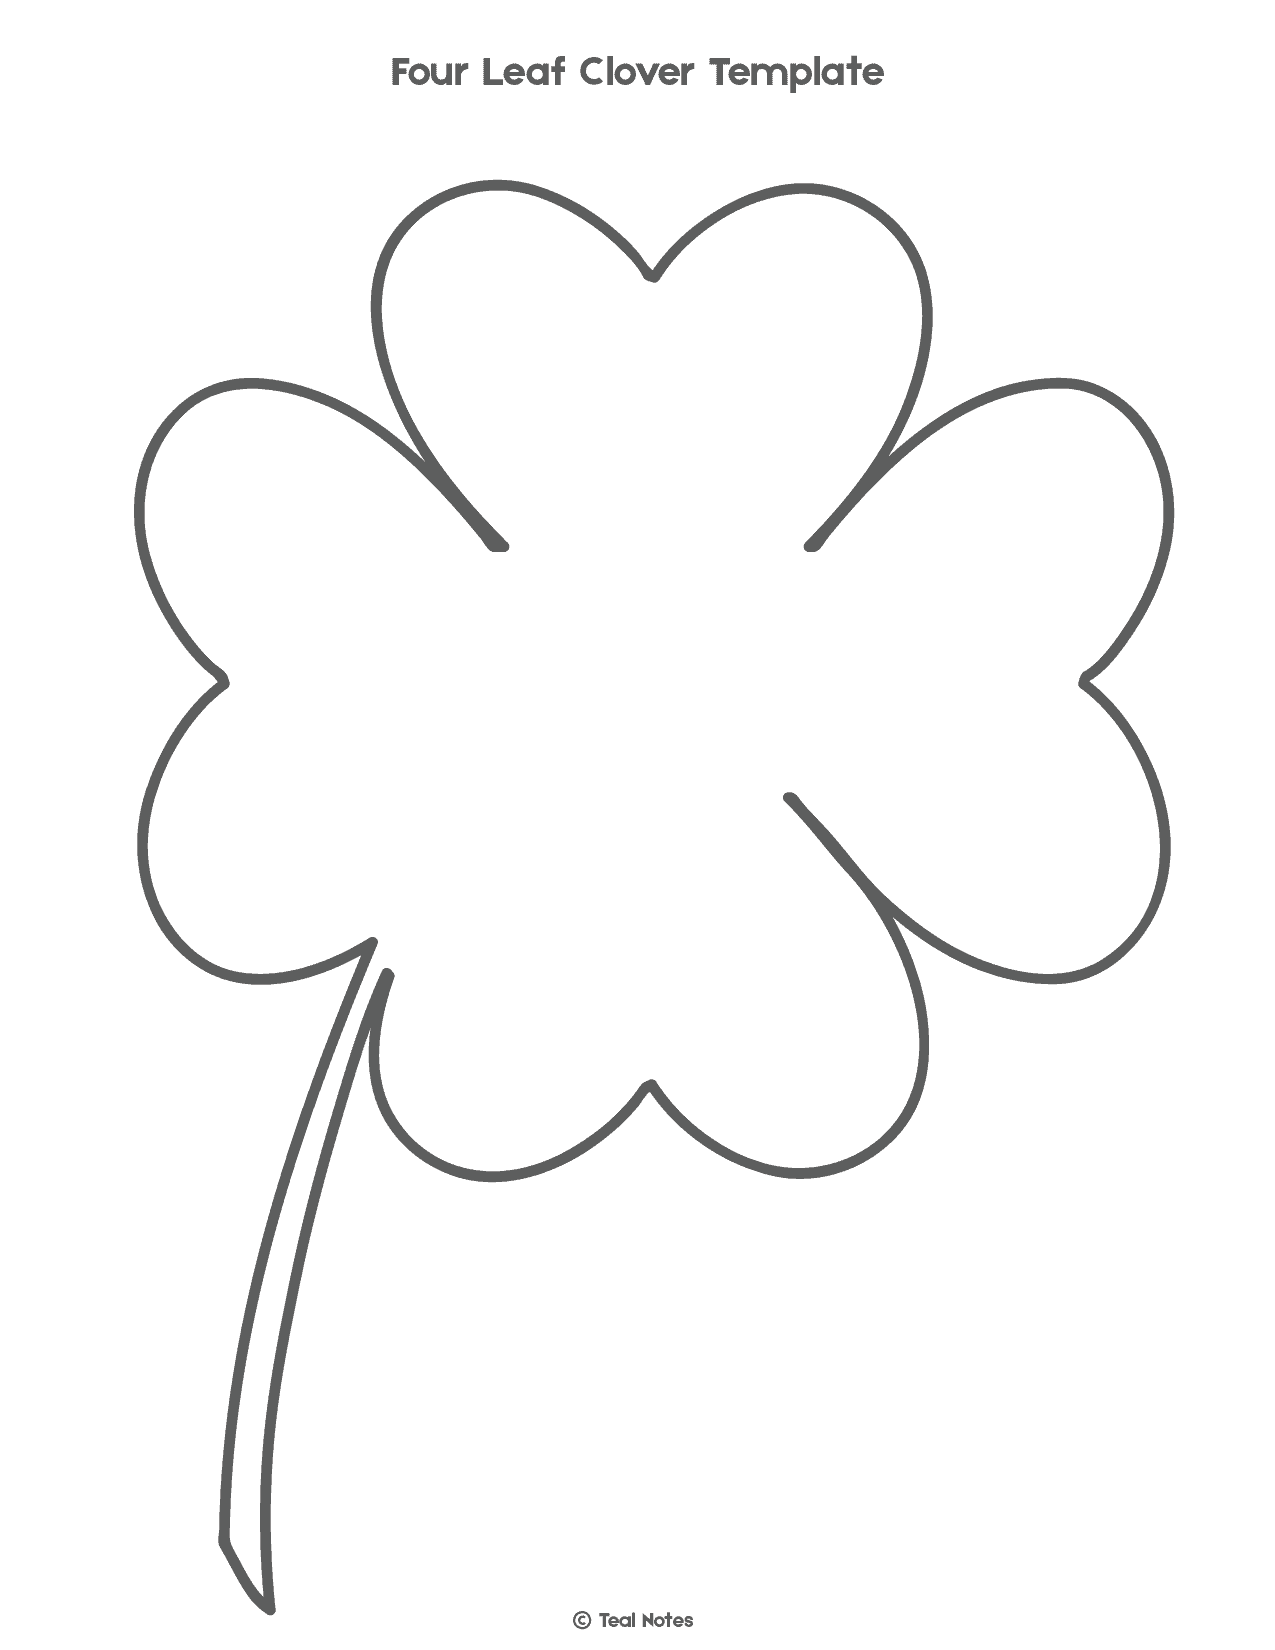 photo about Printable Four Leaf Clover named 4 Leaf Clover Template: No cost Shamrock Template Printable